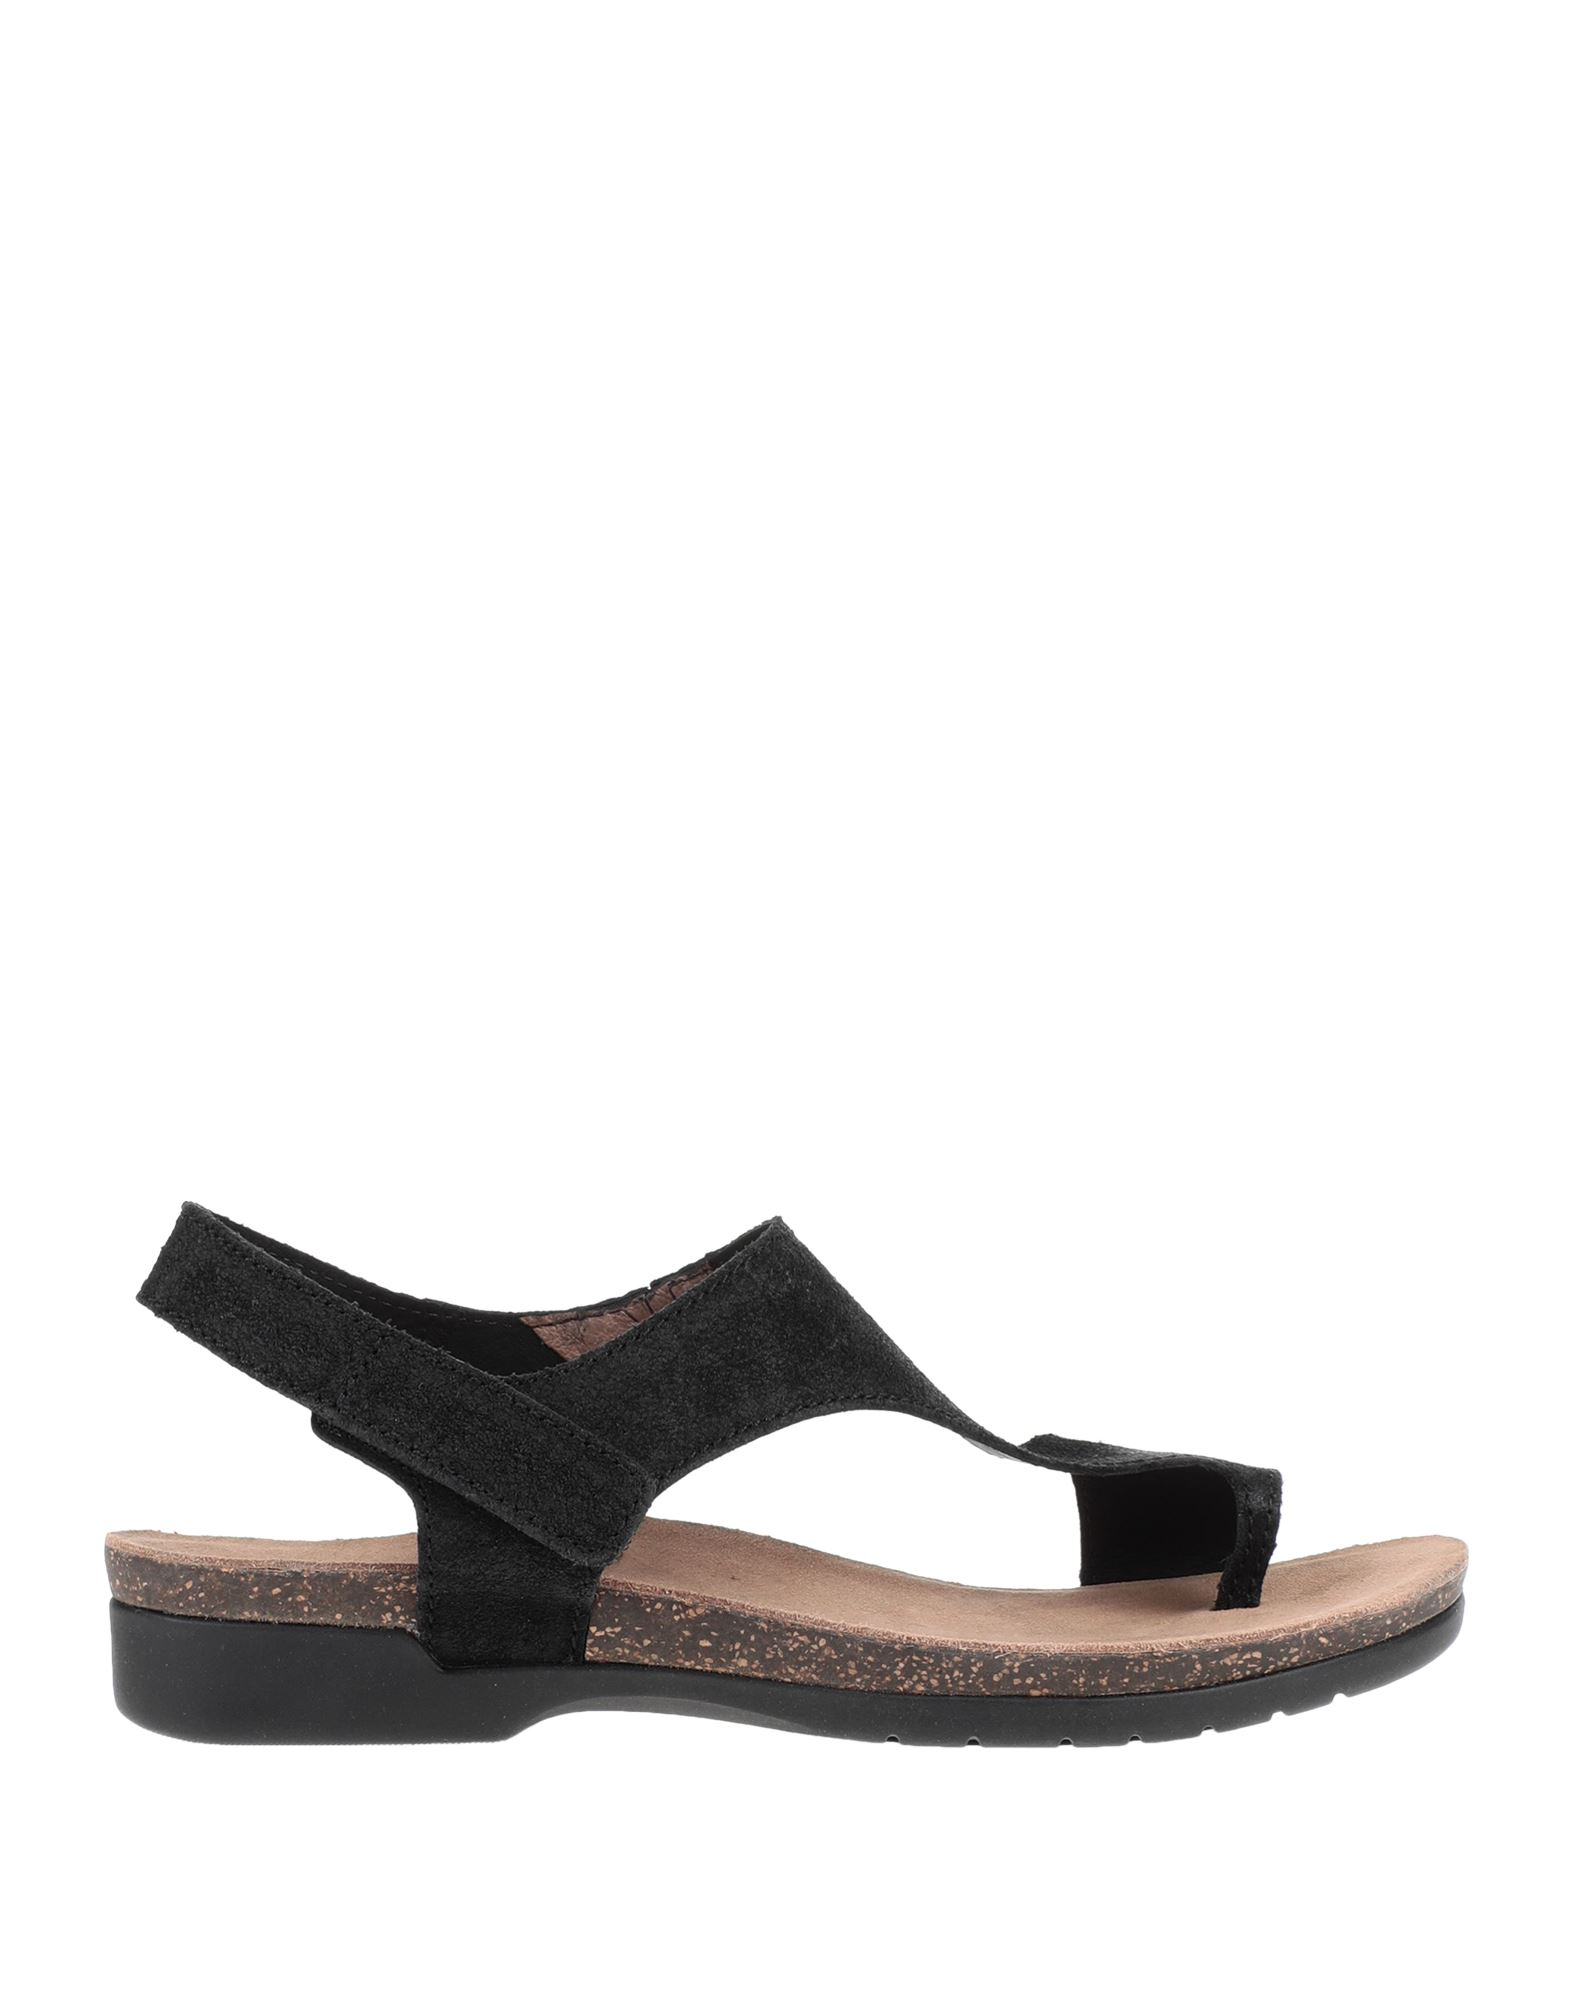 DANSKO Toe strap sandals. suede effect, no appliqués, solid color, velcro closure, round toeline, flat, leather lining, rubber sole, contains non-textile parts of animal origin. Soft Leather